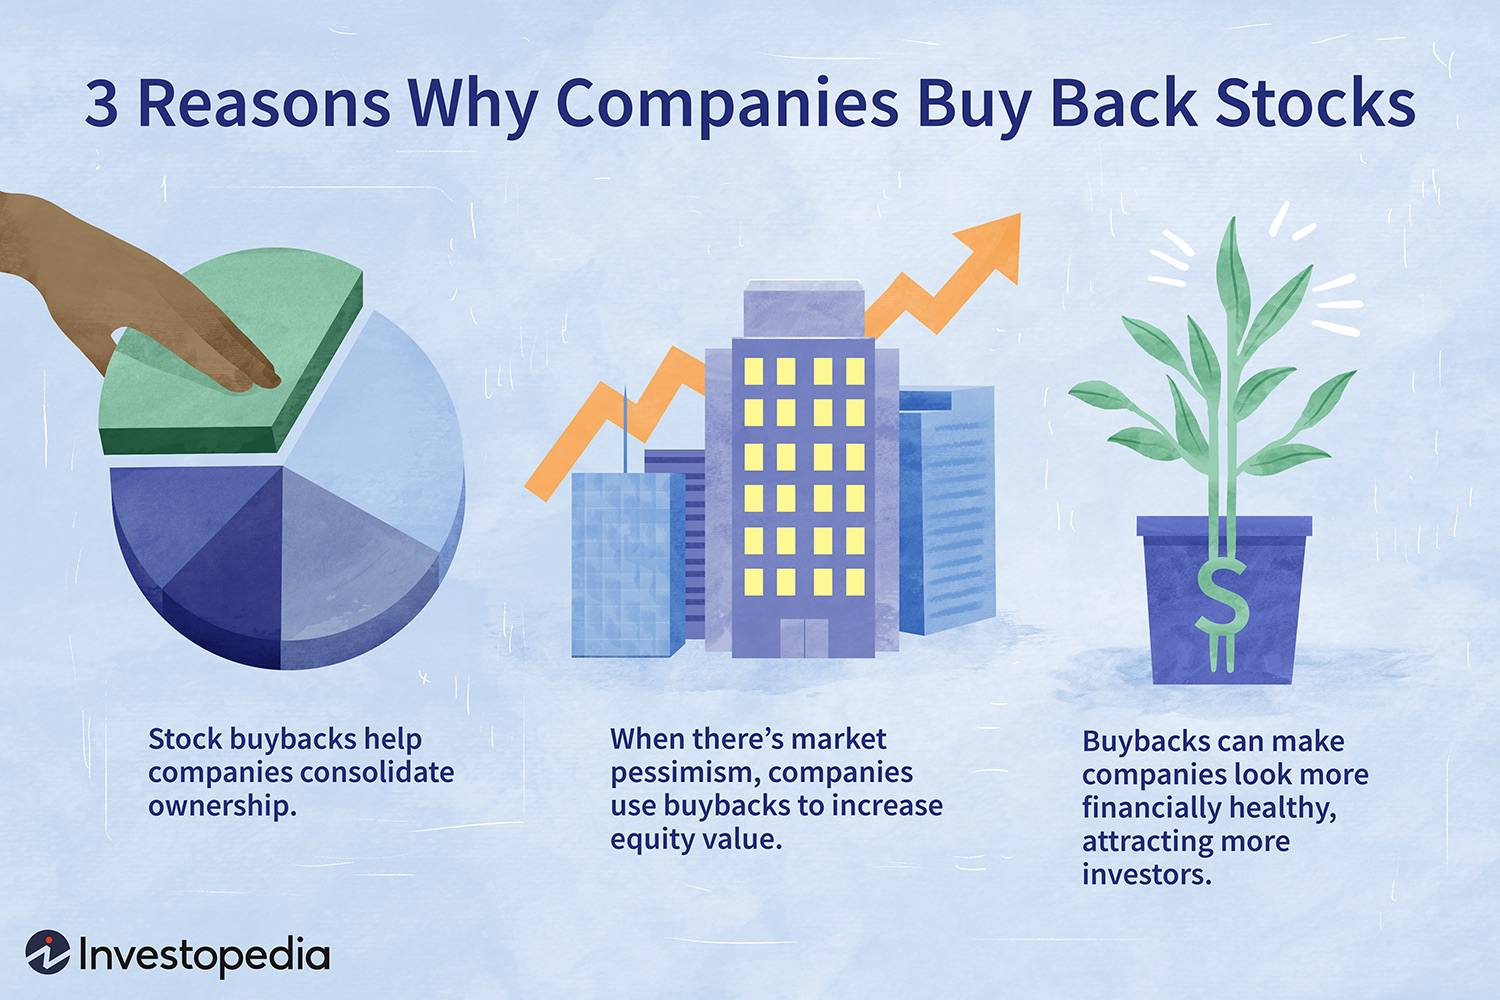 Why Would a Company Buy Back Its Own Shares?